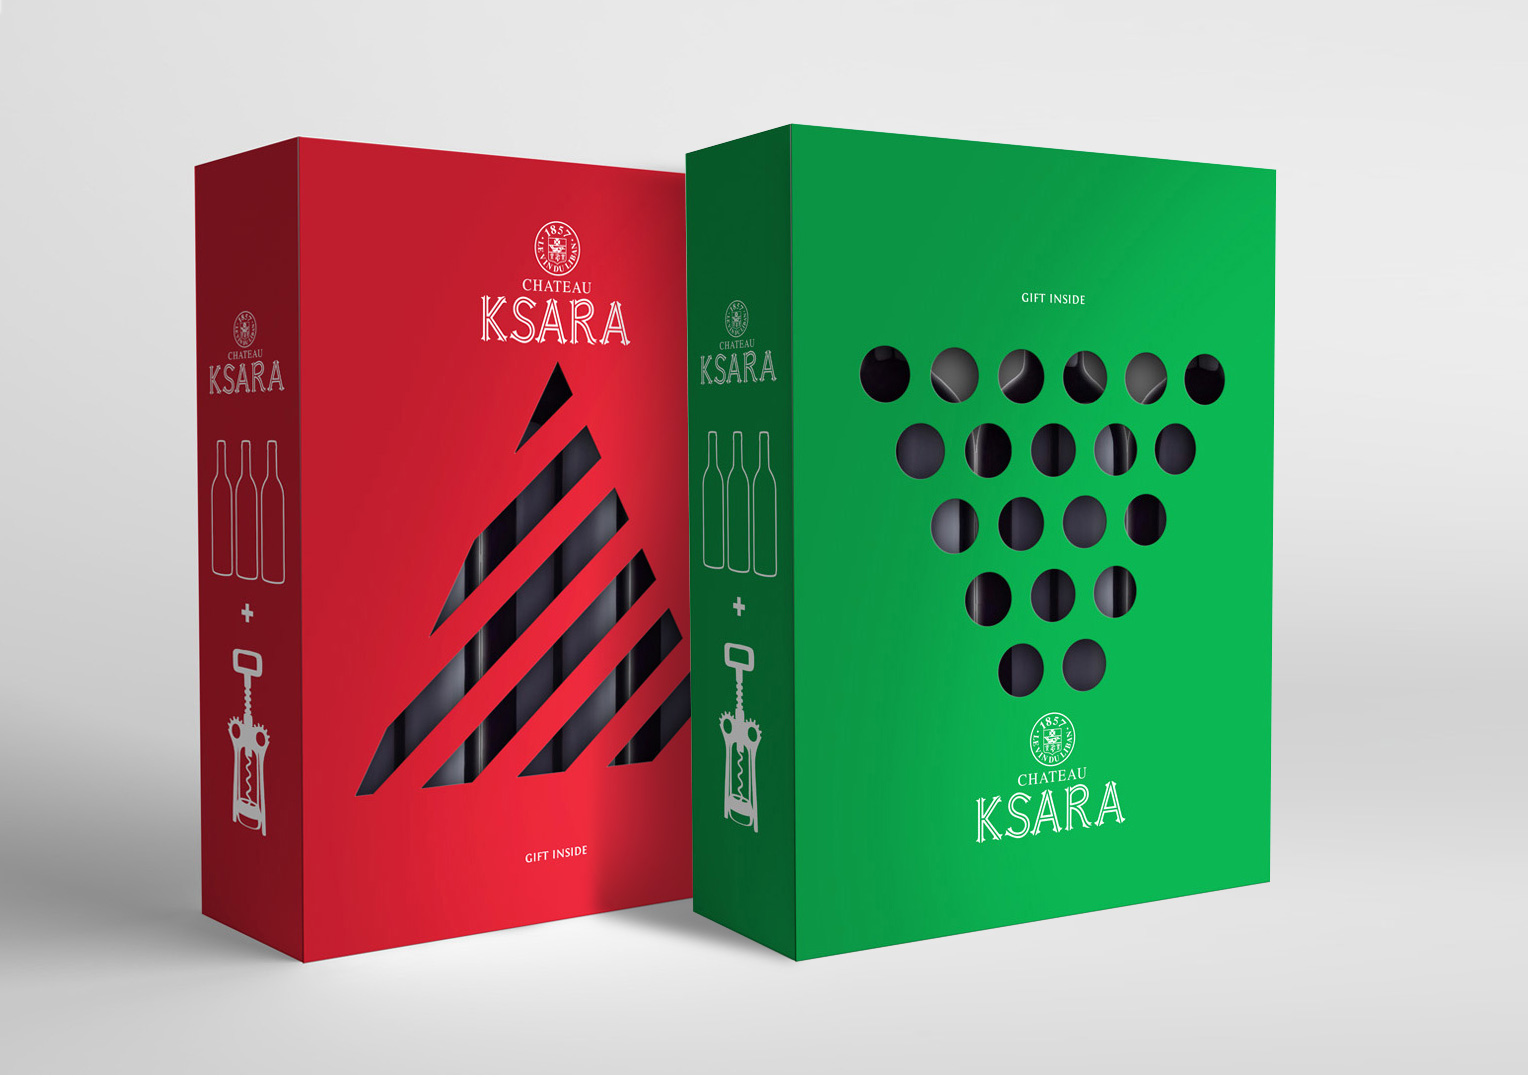 Ksara 'End of Year' Pack